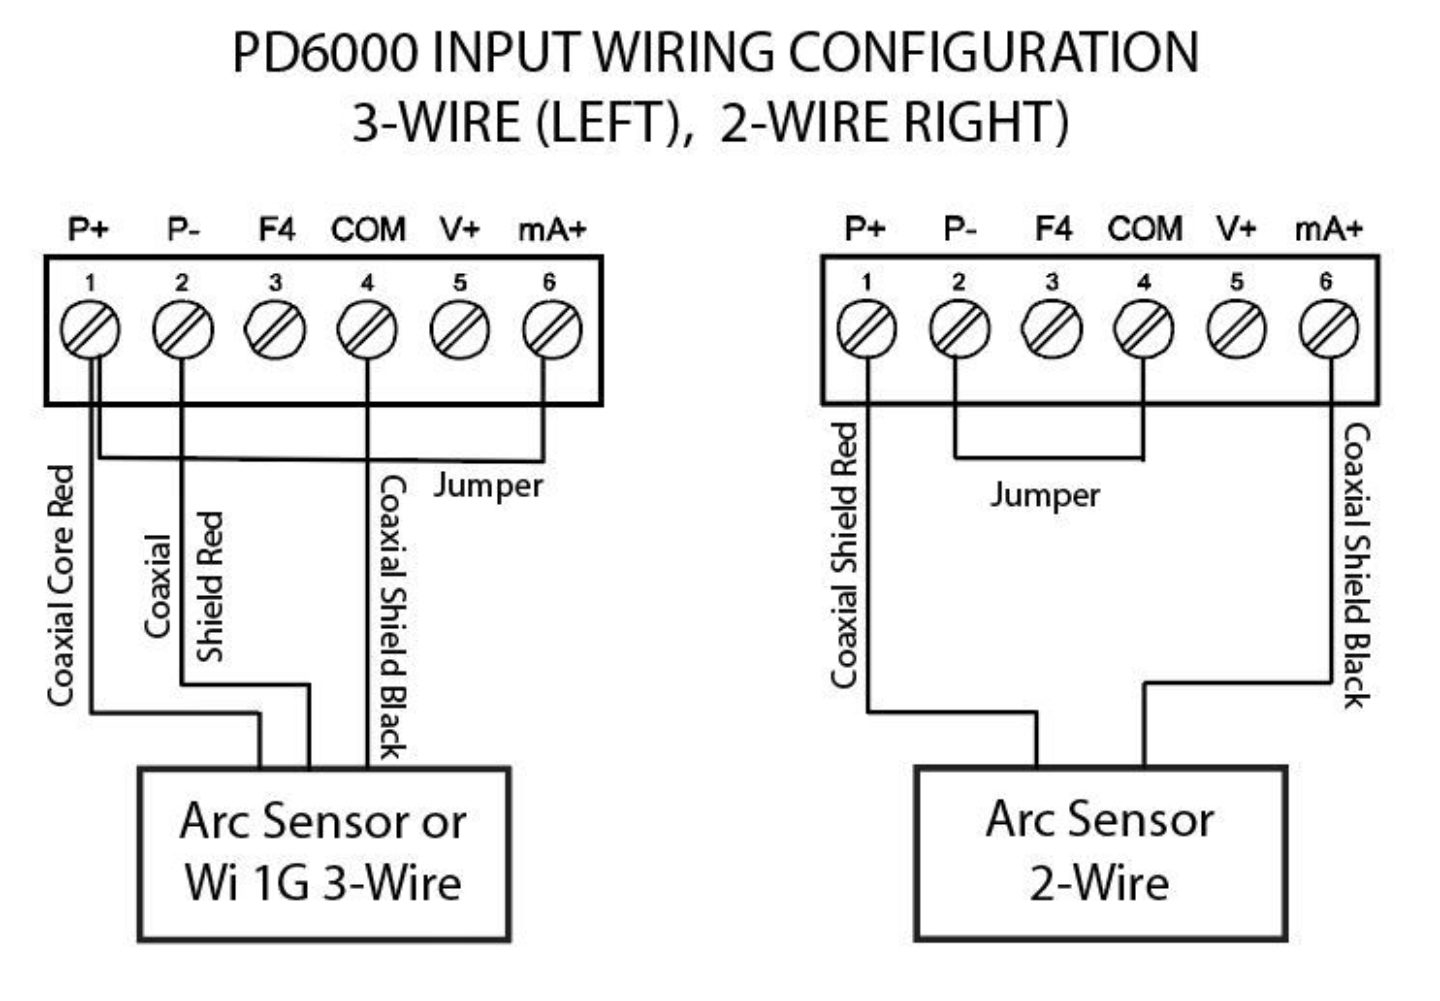 3 wire sensor wiring is required for visiferm products as well as the addition of the wi 1g bluetooth adapter ref 243460 to any sensor  [ 1440 x 1001 Pixel ]